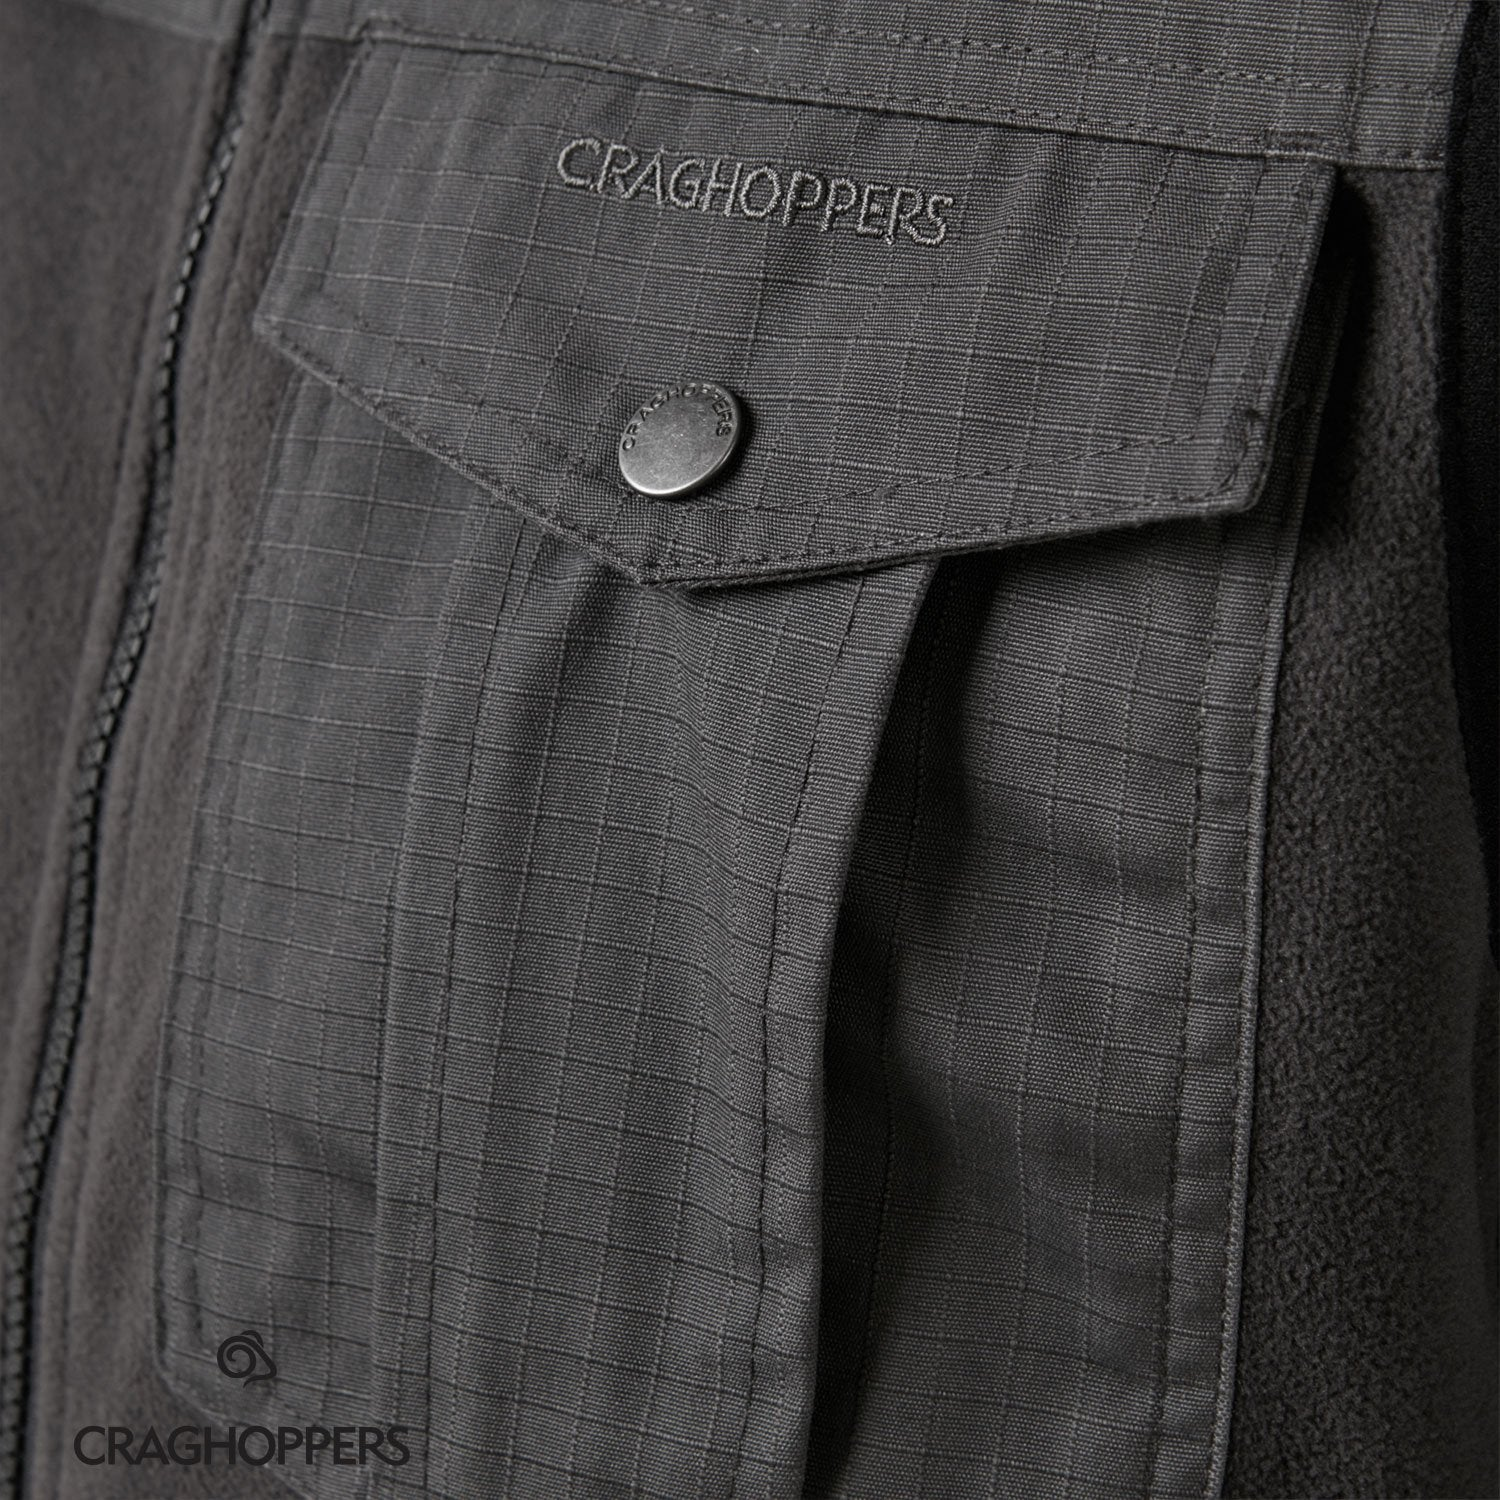 Chest pocket detail